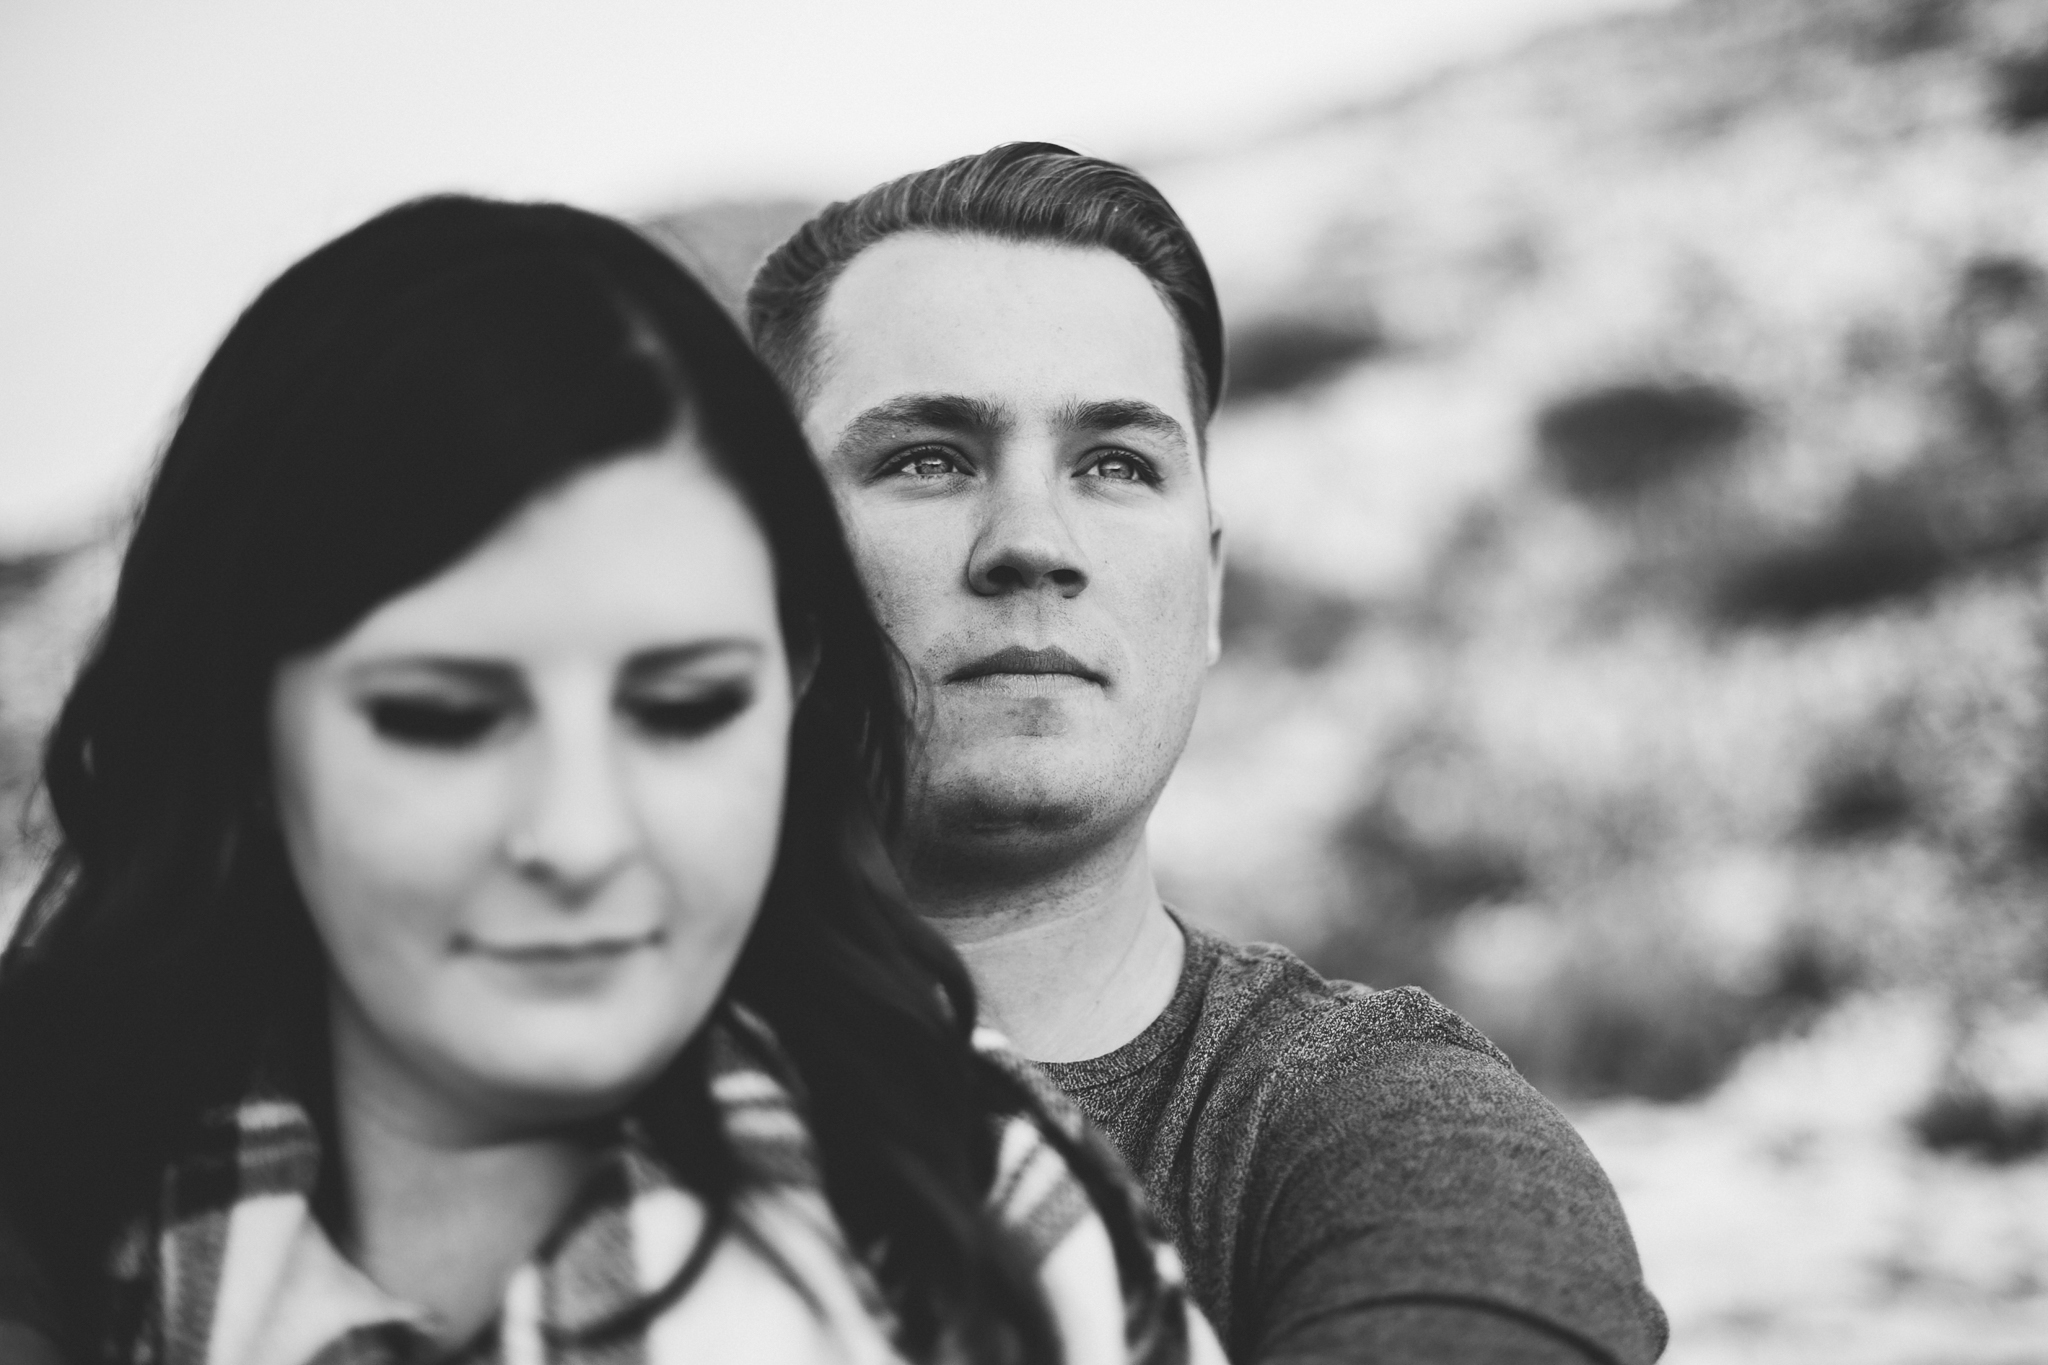 lethbridge-photographer-love-and-be-loved-photography-christy-bryan-fall-autumn-engagement-photo-image-picture-56.jpg